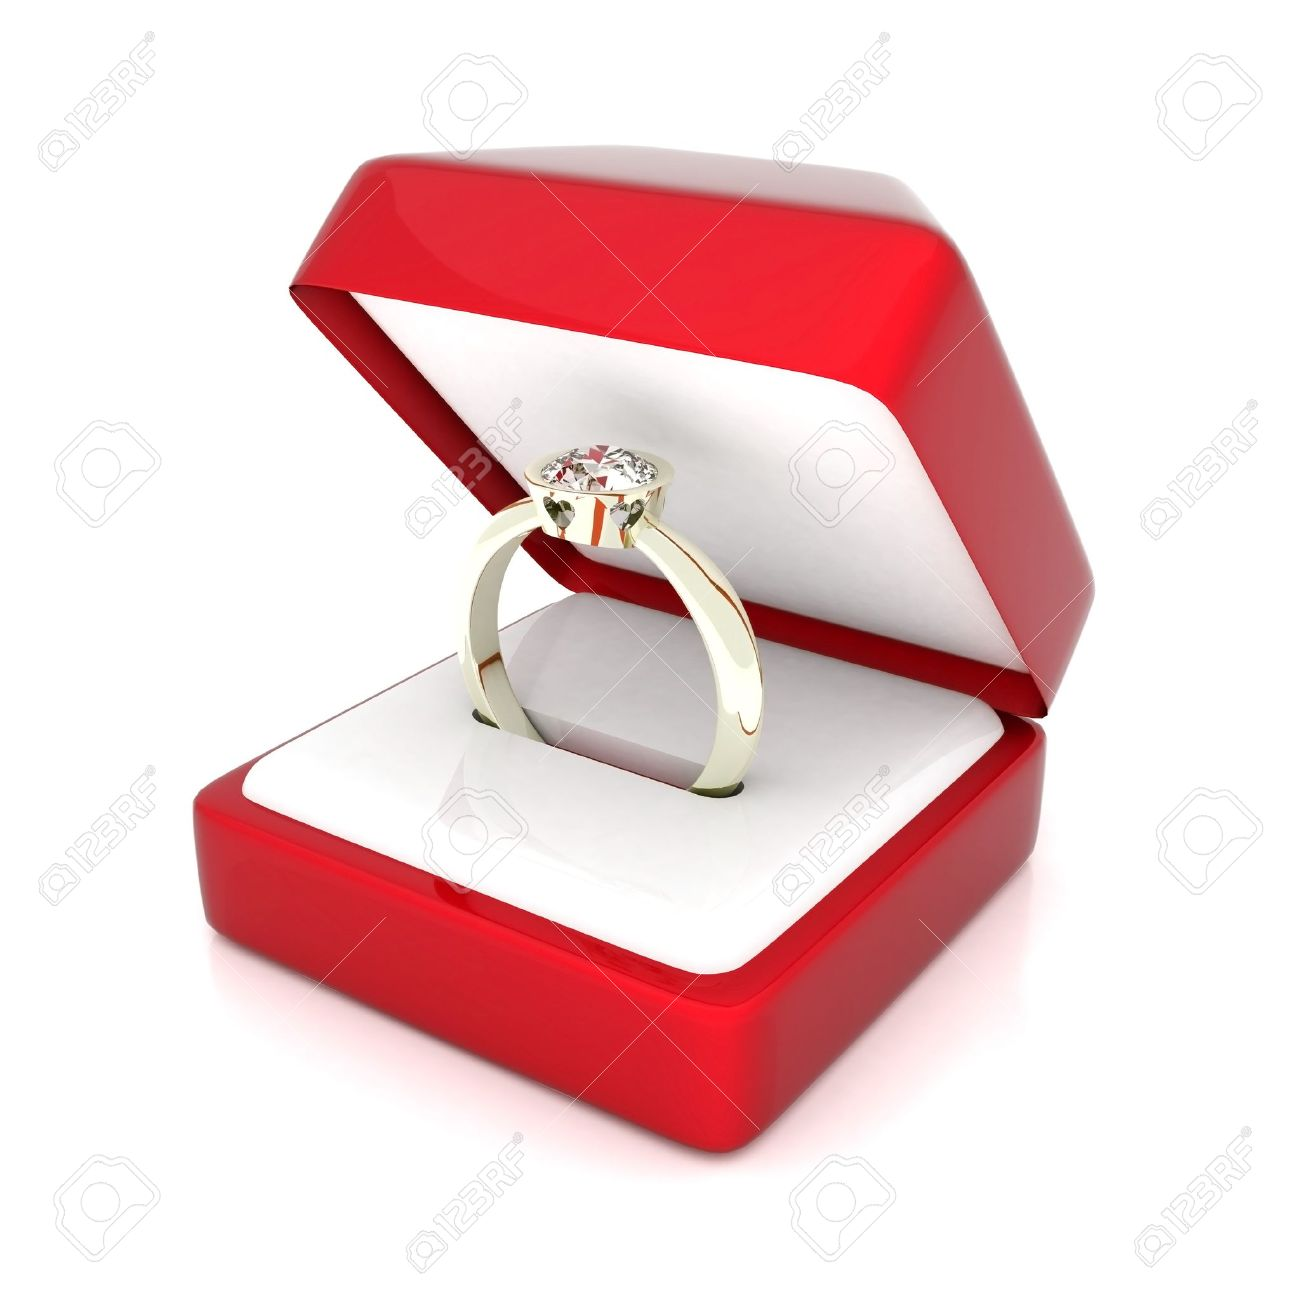 Image Of Wedding Rings In A Gift Box On White Background Stock Photo ...